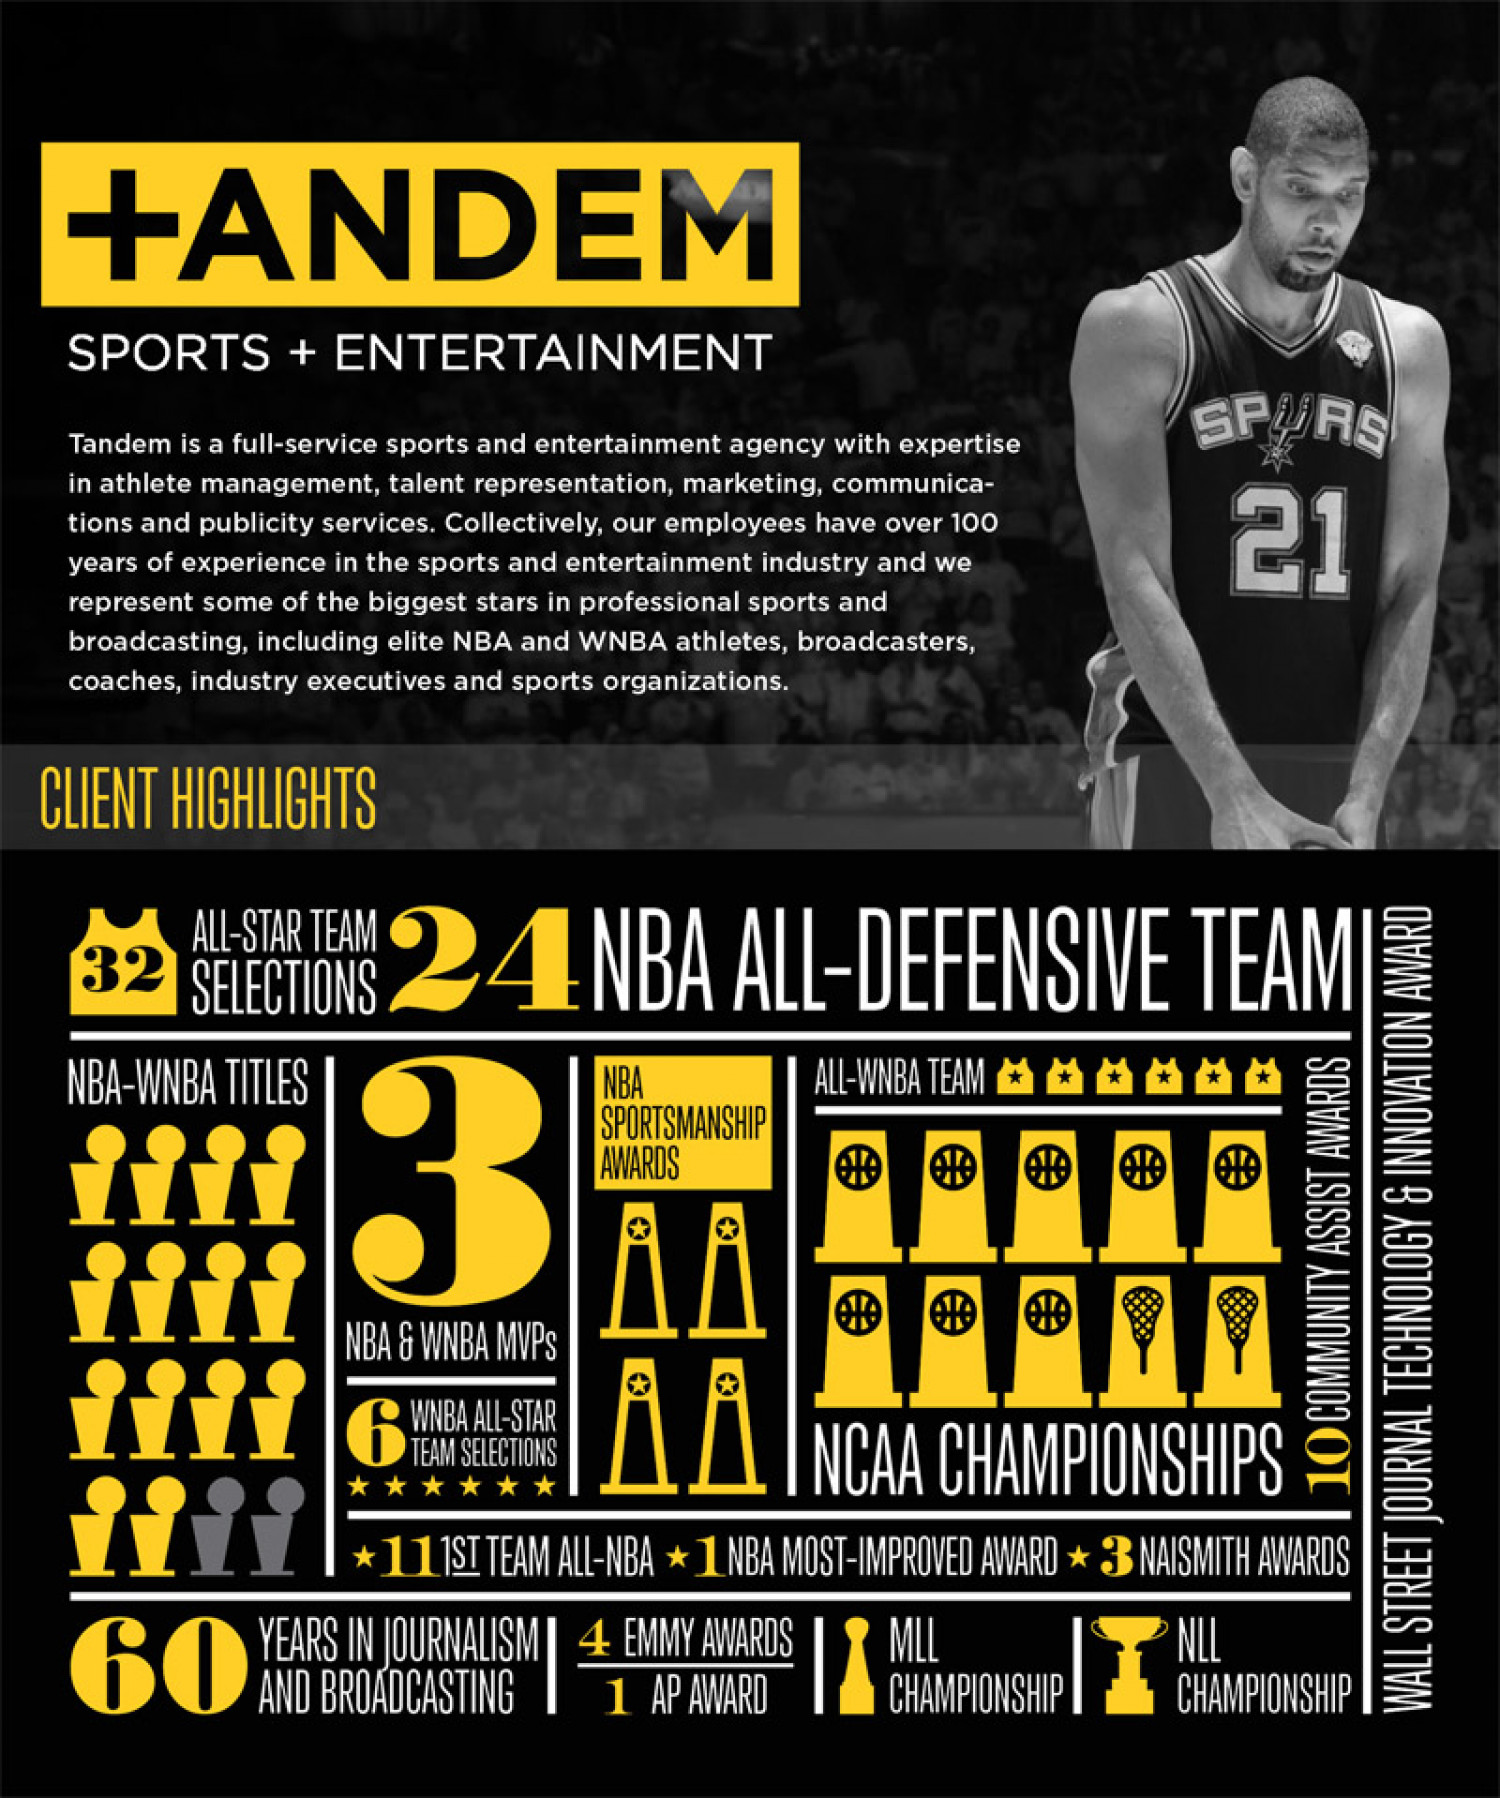 Tandem Sports Entertainment Client Highlights Infographic